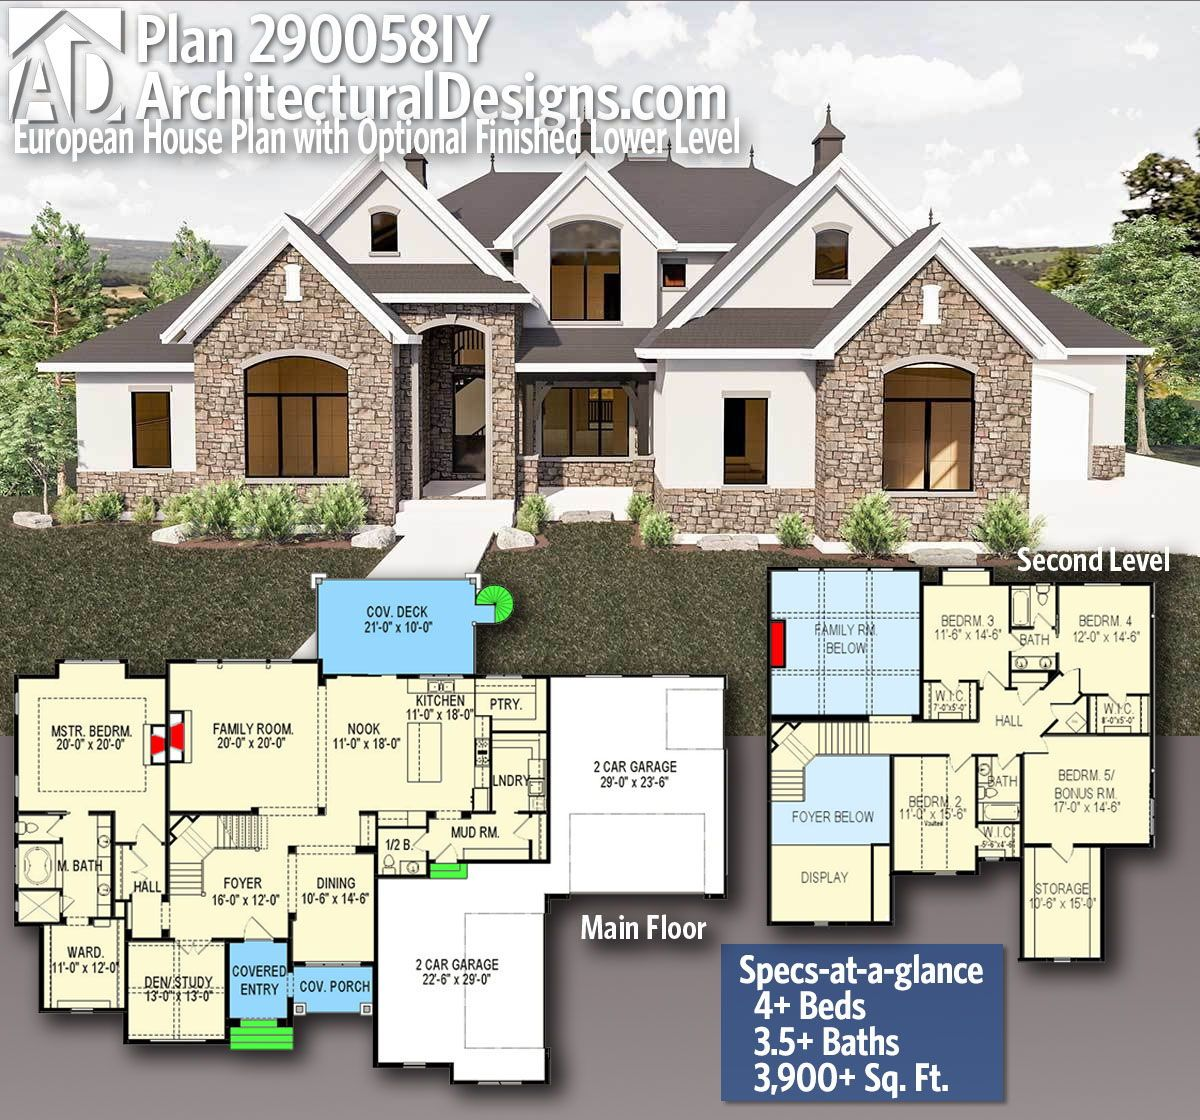 Plan 290058iy European House Plan With Optional Finished Lower Level In 2020 Sims House Plans Architectural Design House Plans House Blueprints